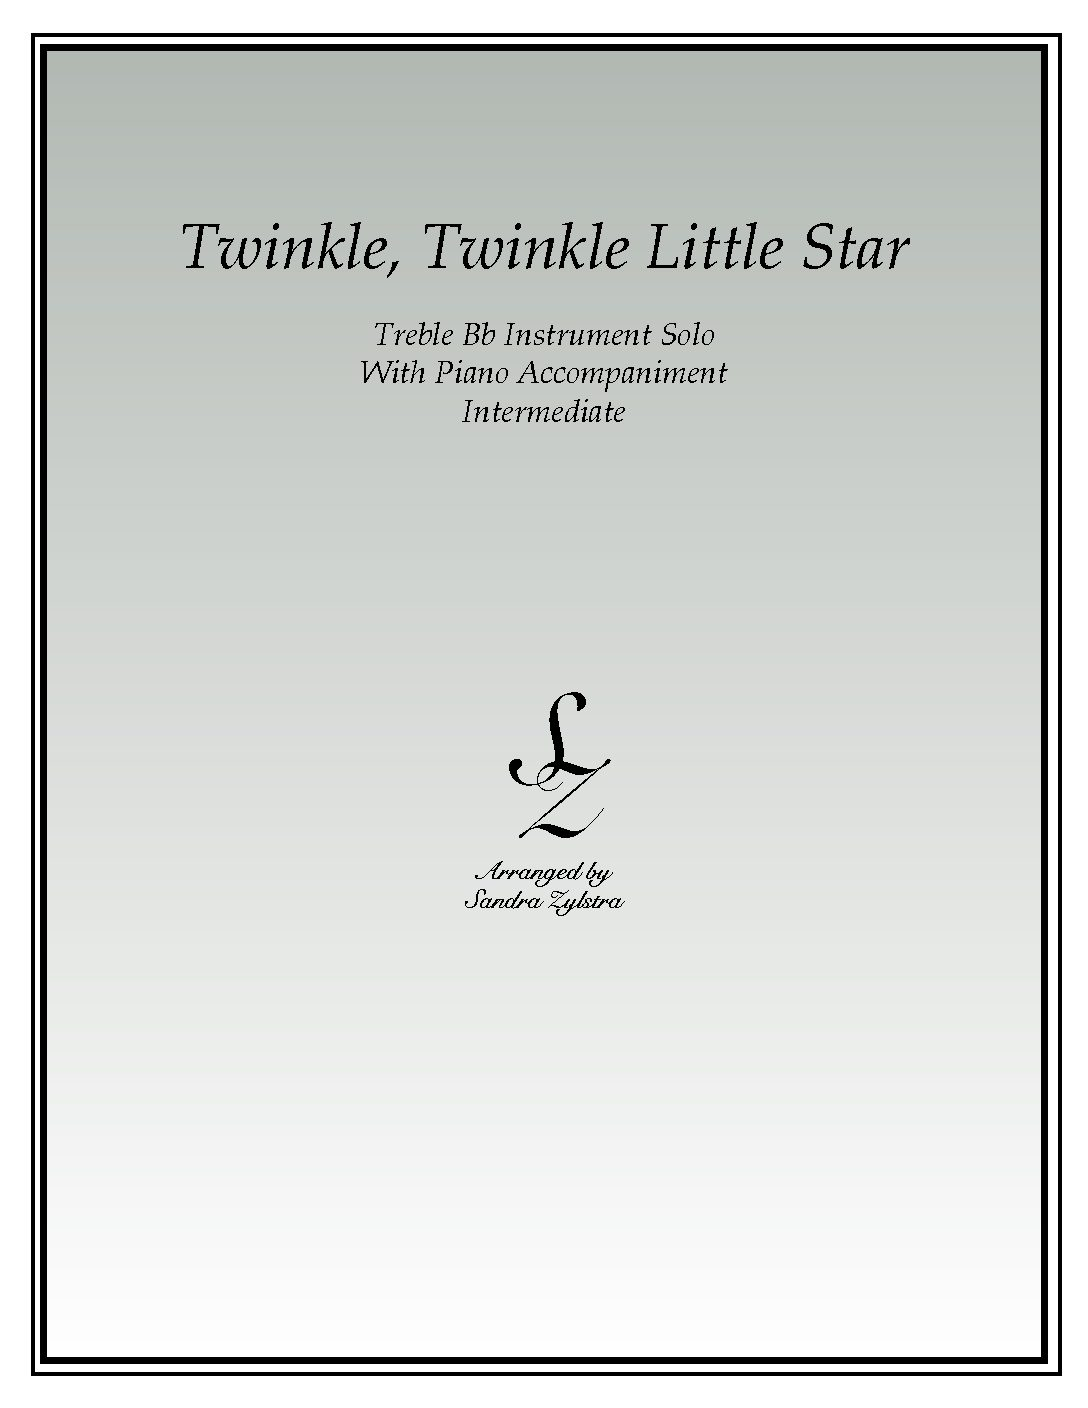 Twinkle, Twinkle Little Star -Treble Bb Instrument Solo